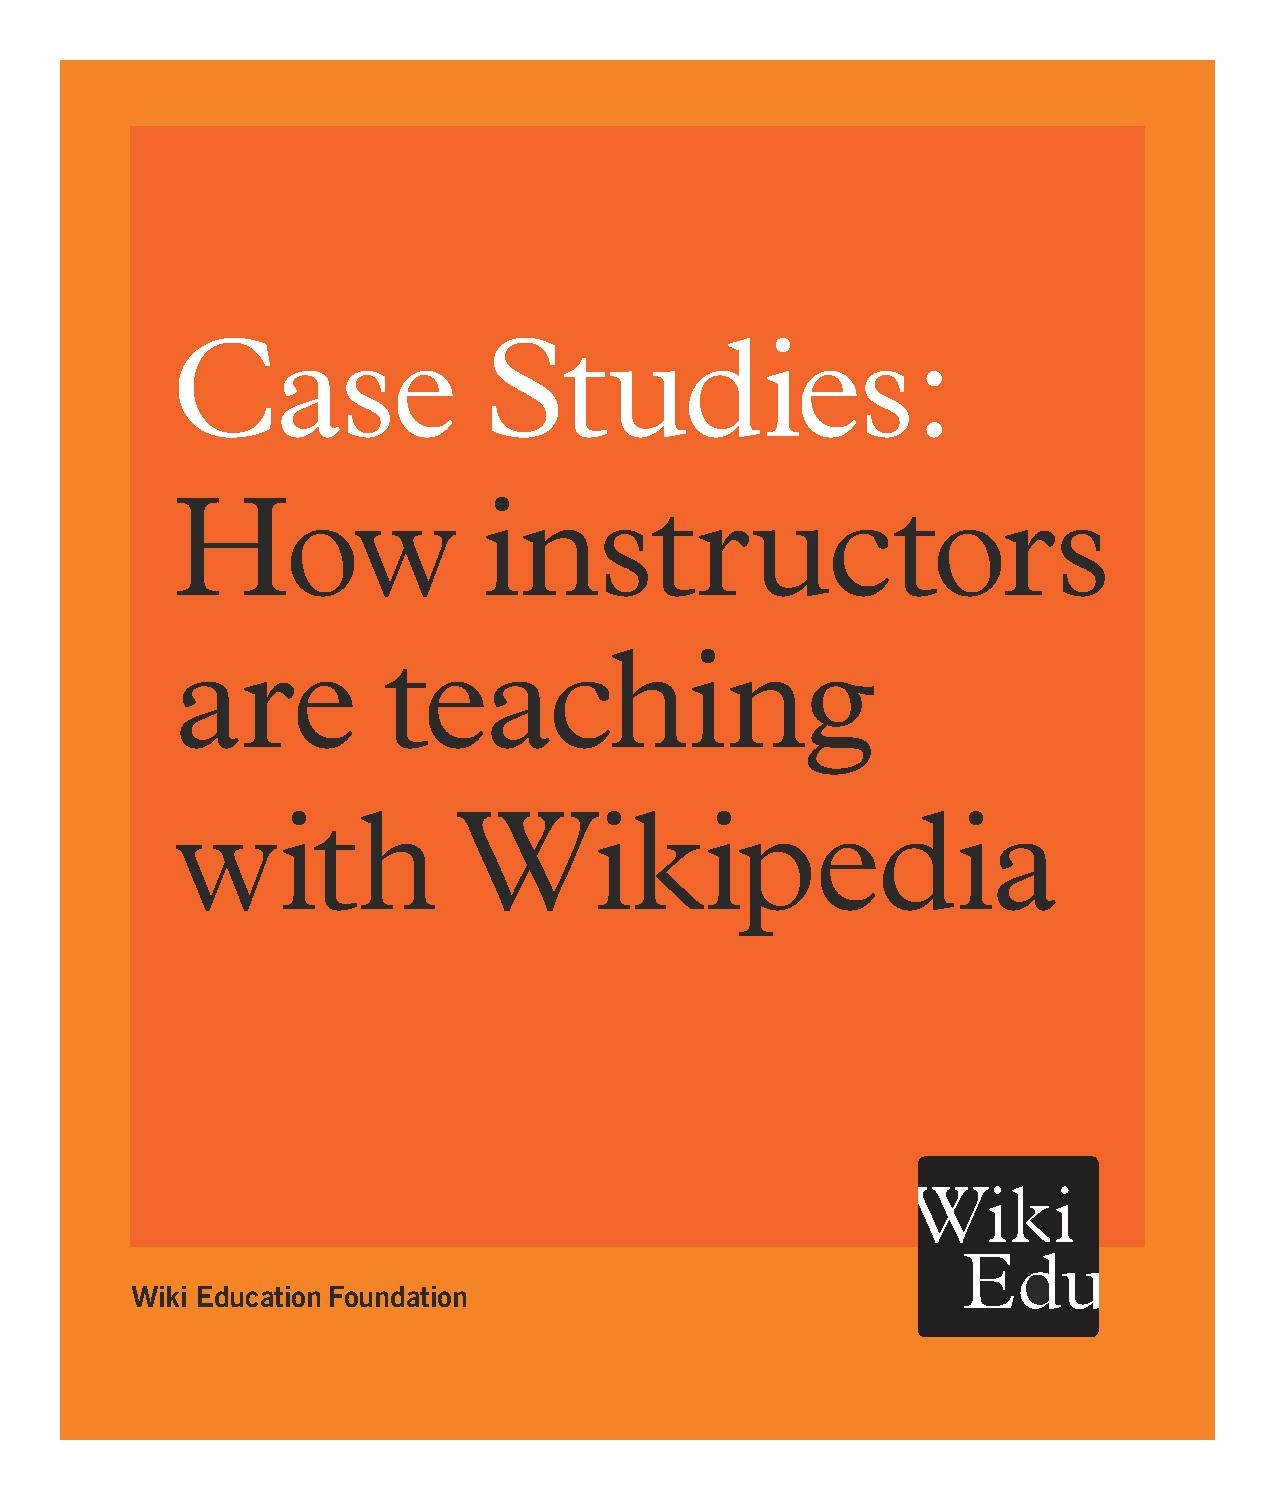 File:Case Studies, How instructors are teaching with Wikipedia (Wiki Education Foundation).pdf